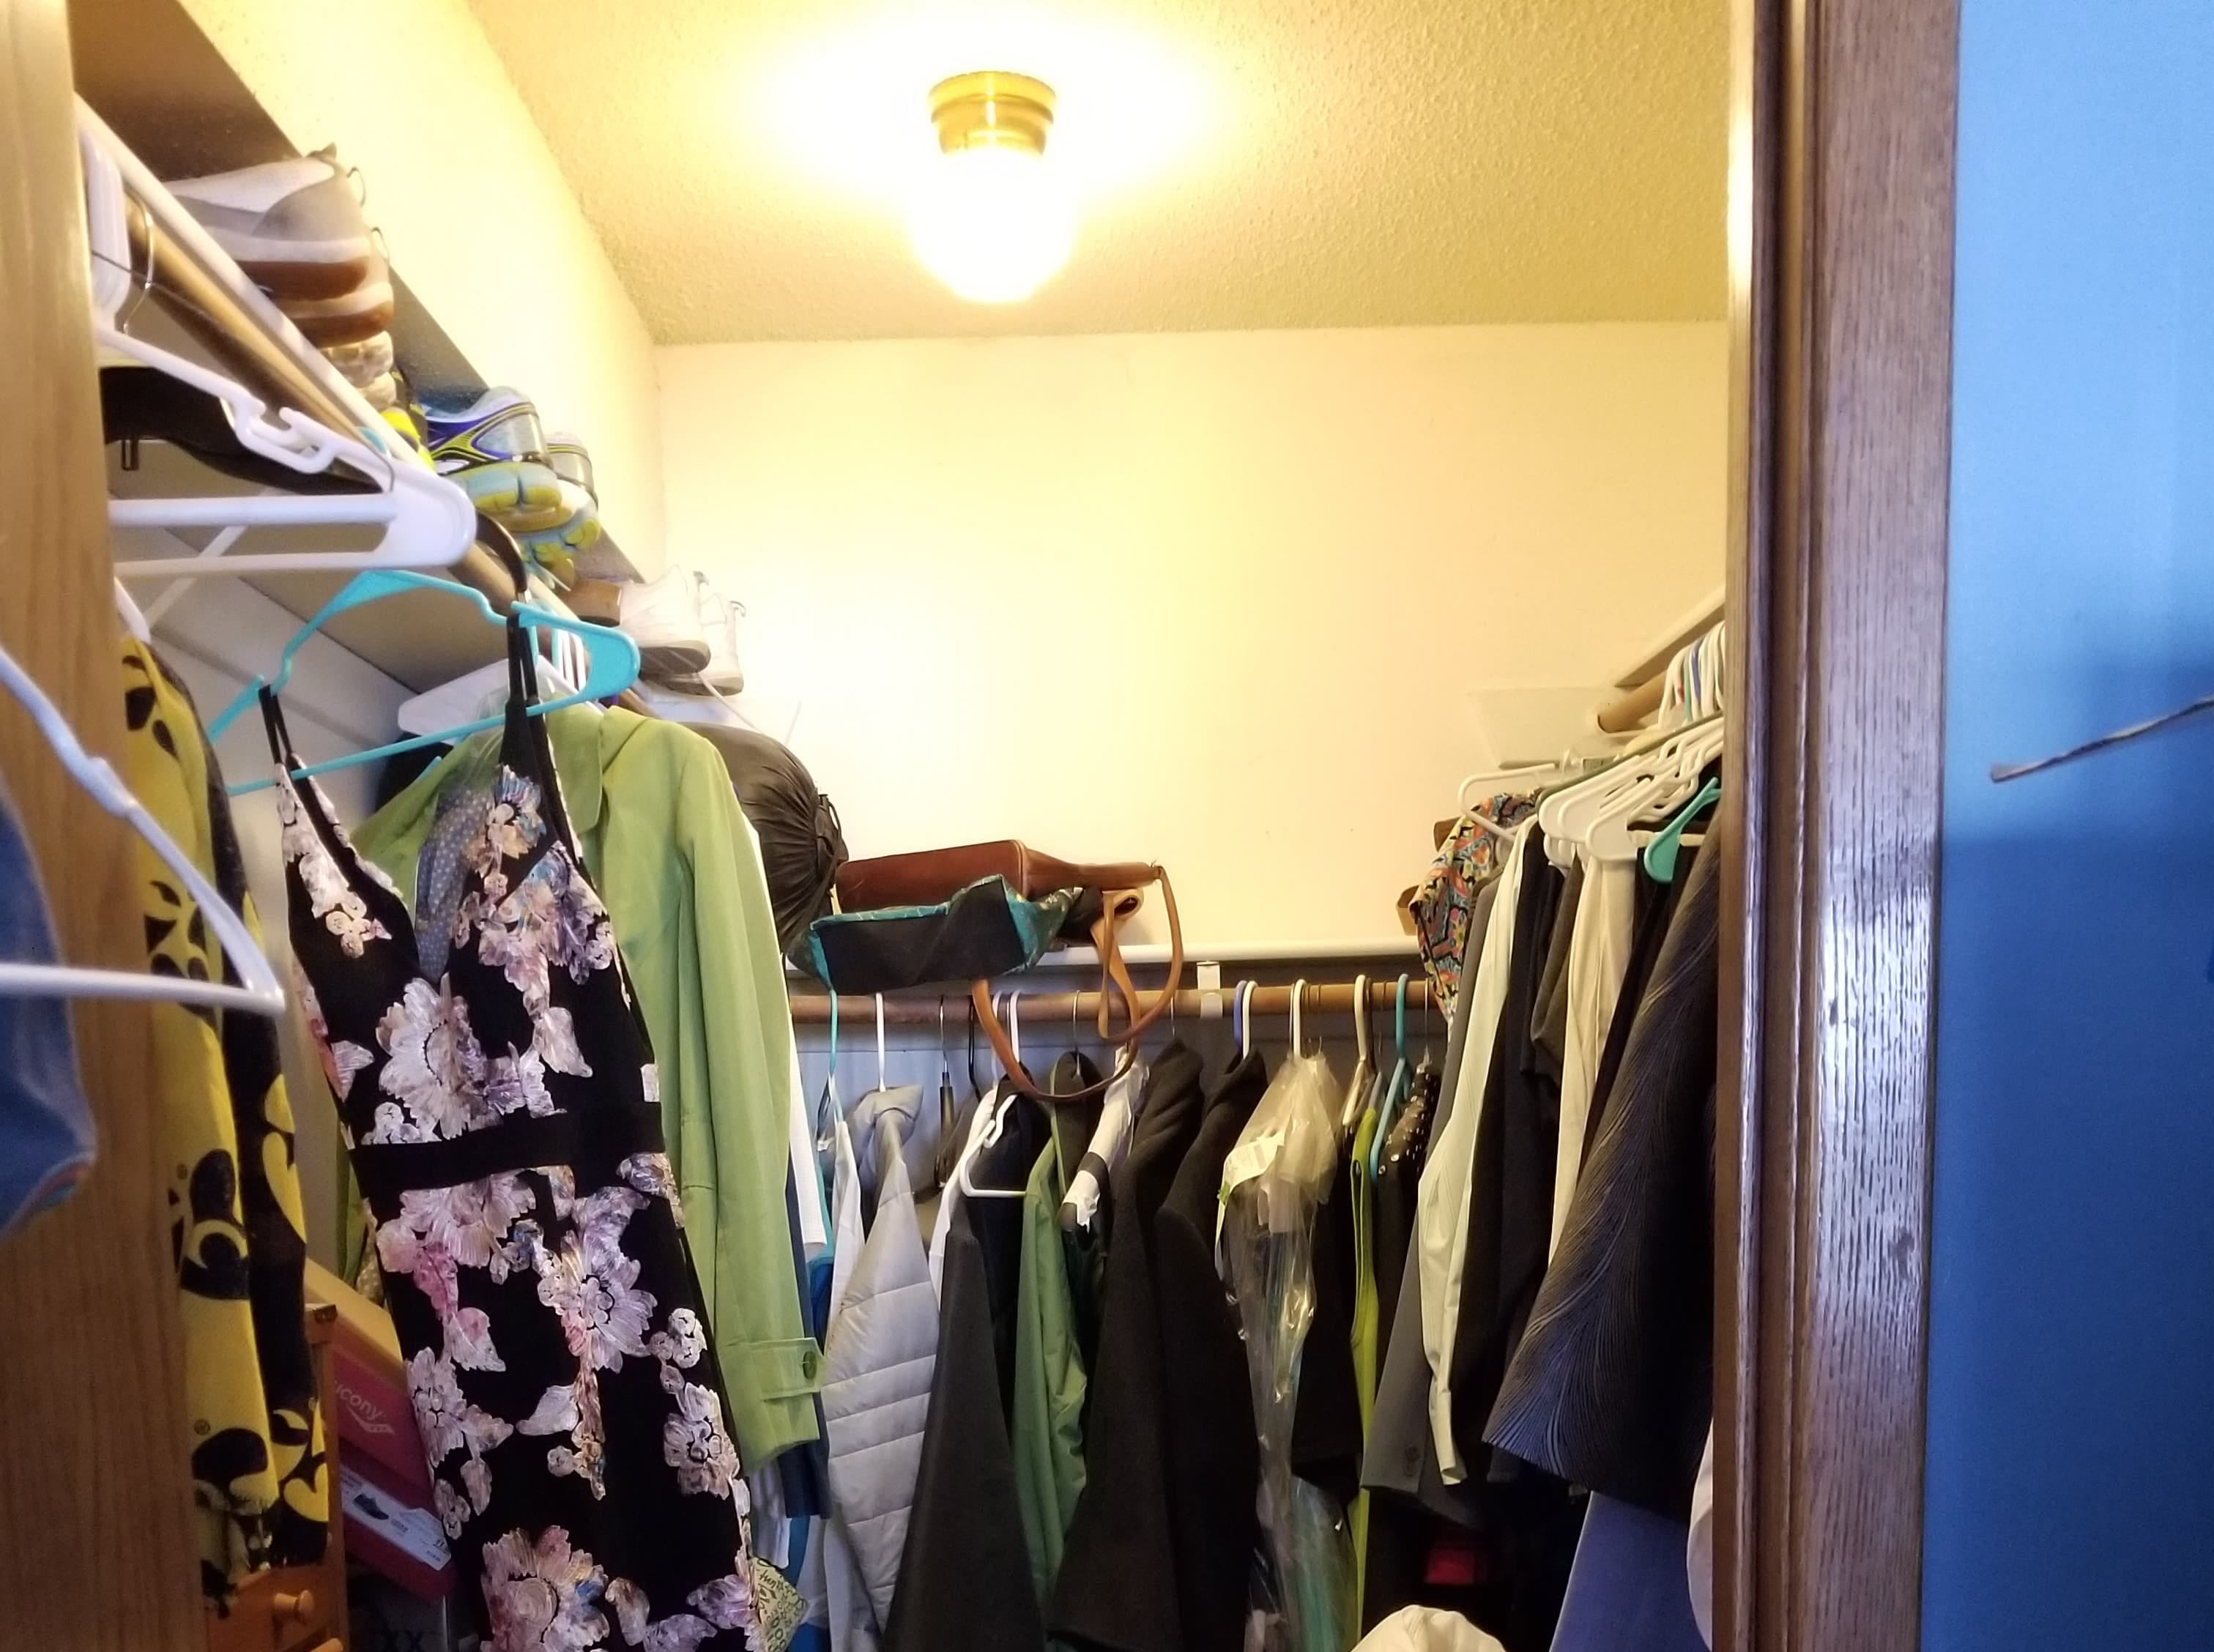 (Before) Beth Dorsett of West Des Moines organized her closet based off Marie Kondo's KonMari method.